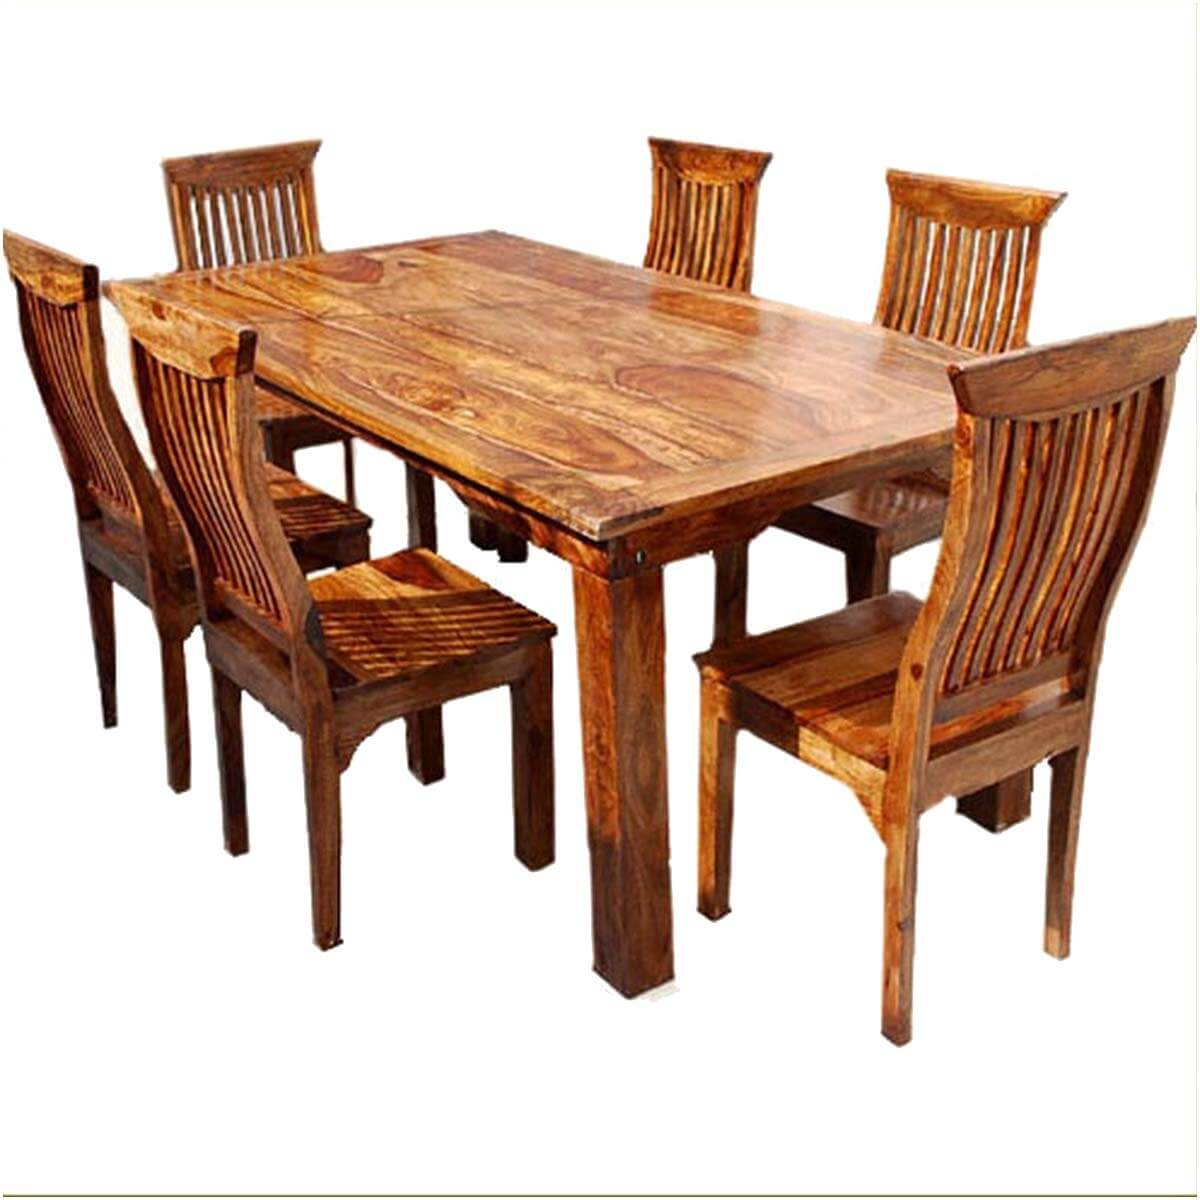 Rustic Dining Room Table Sets: Dallas Ranch Solid Wood Rustic Dining Table Chairs & Hutch Set